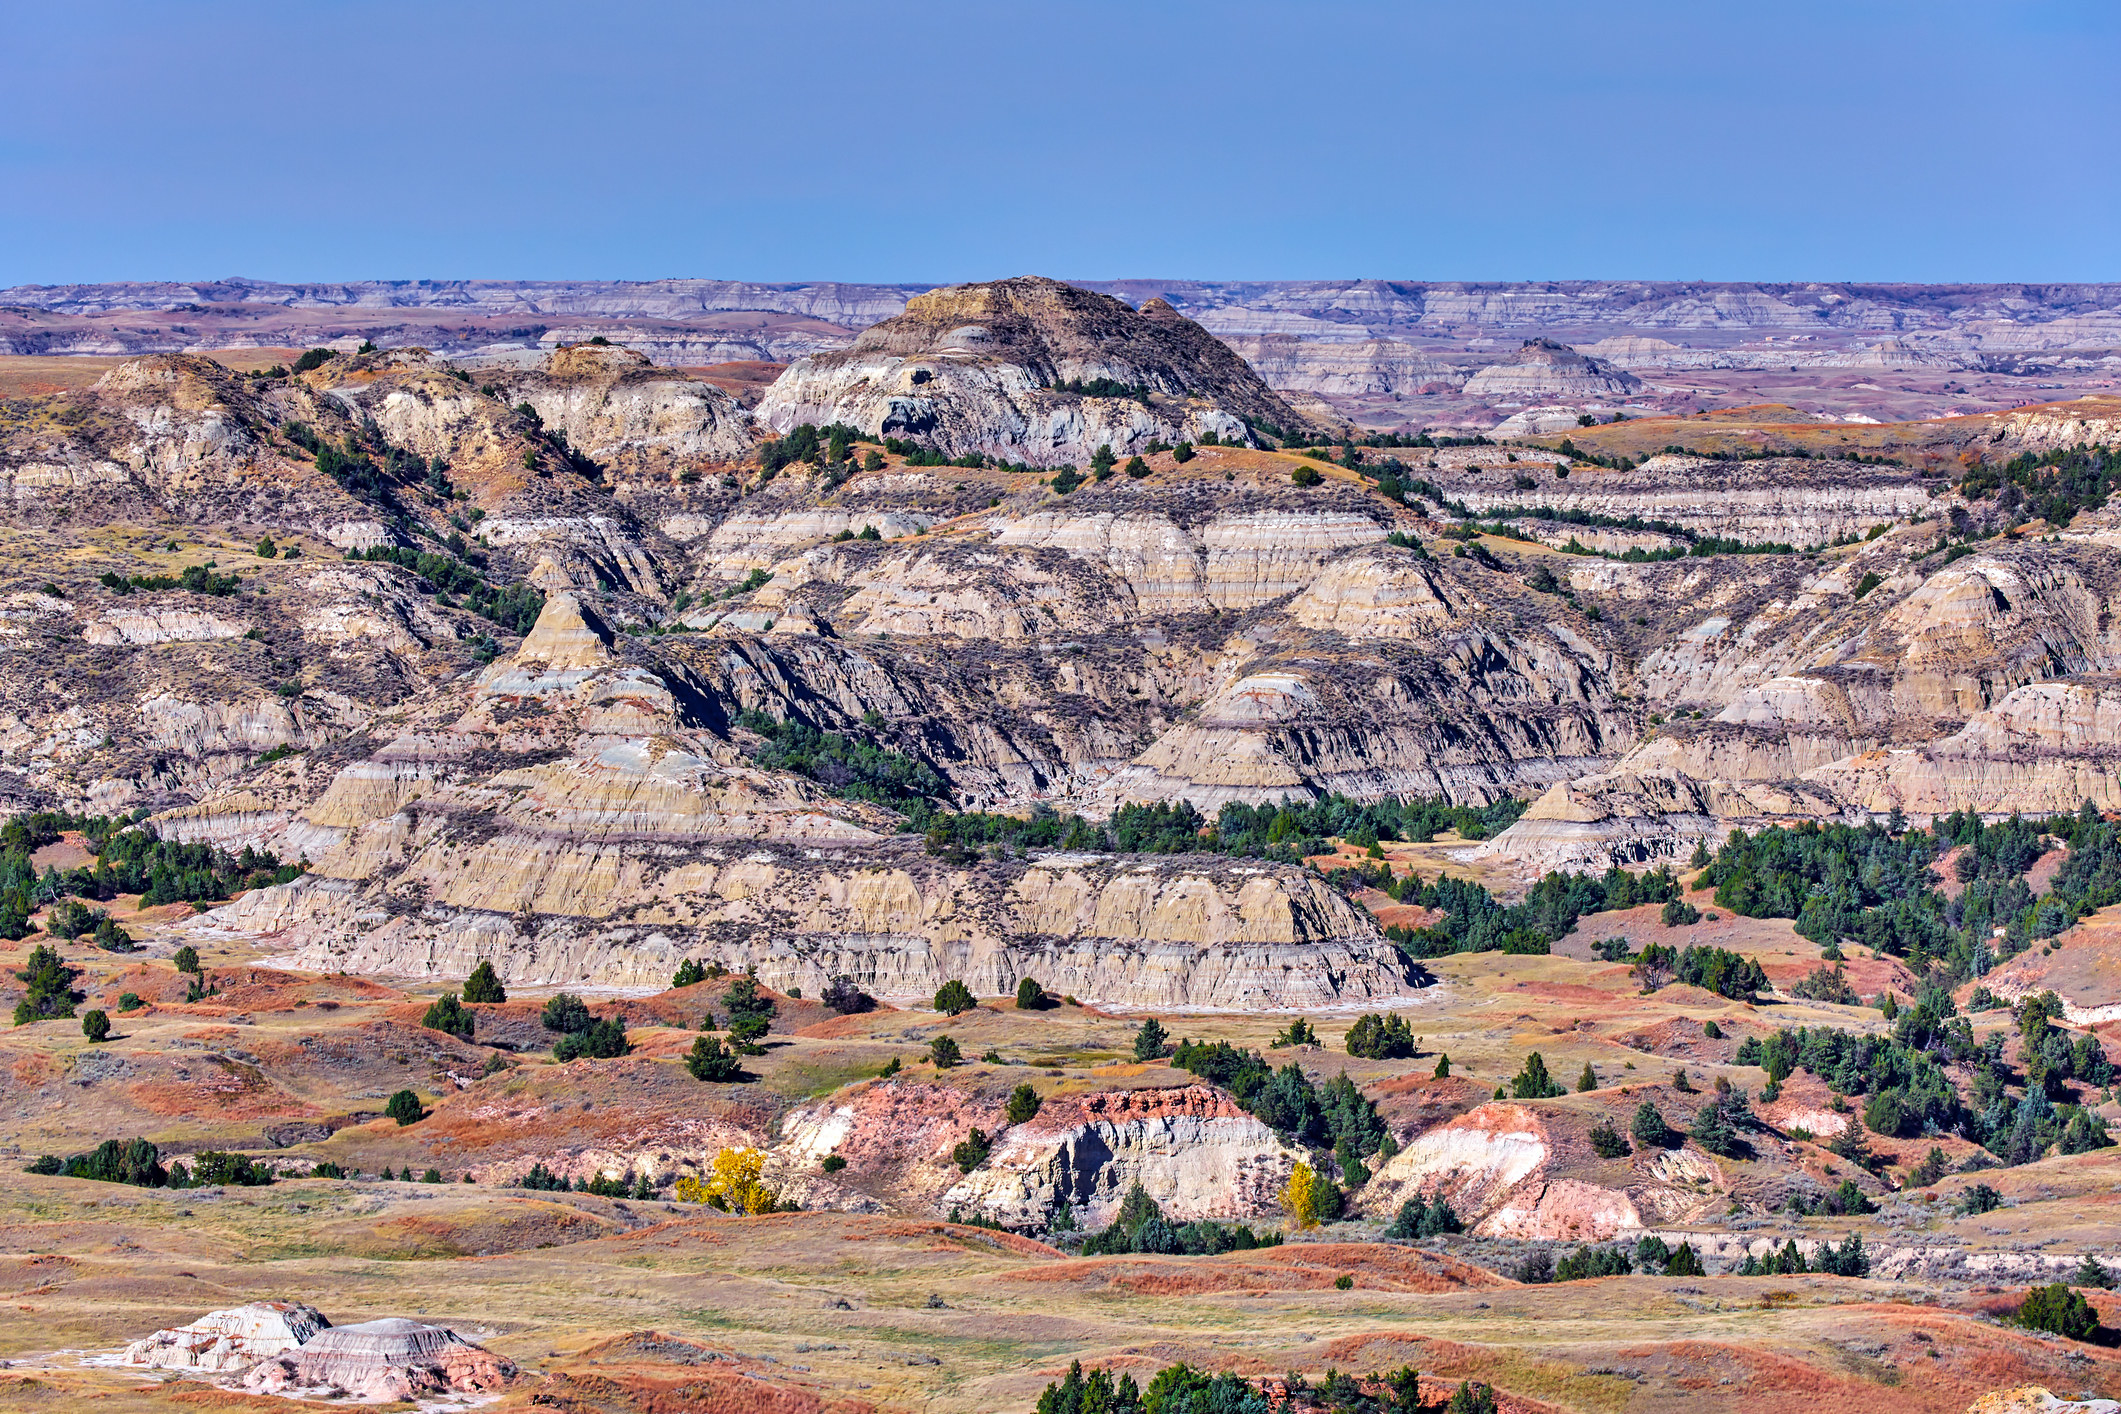 The rugged, red-tinged rocky badlands of Theodore Roosevelt National Park under a cloudless blue sky